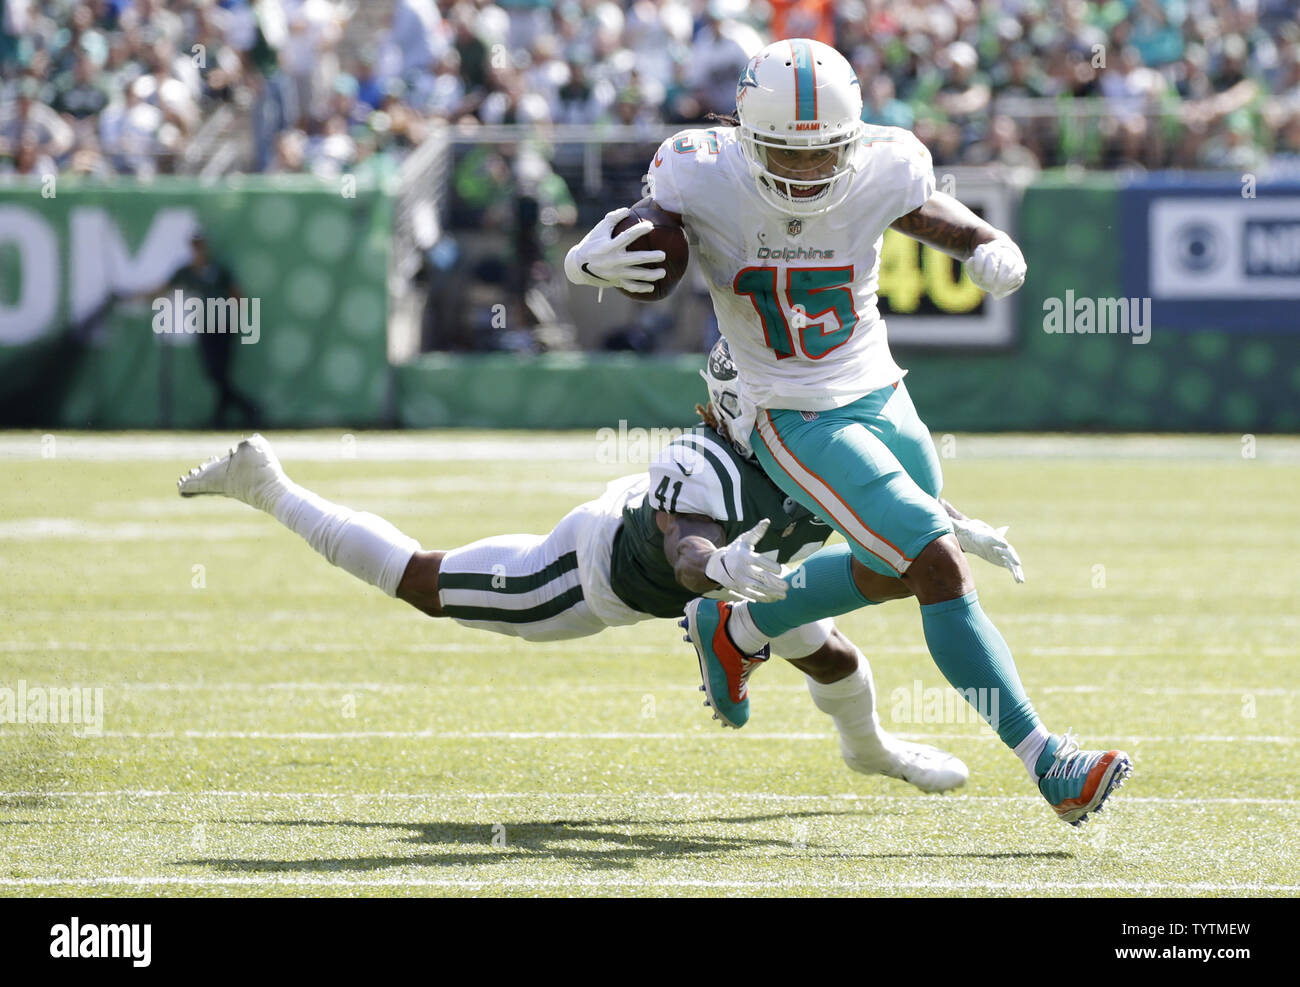 super popular eb33d 0c532 New York Jets Buster Skrine dives to try to tackle Miami ...